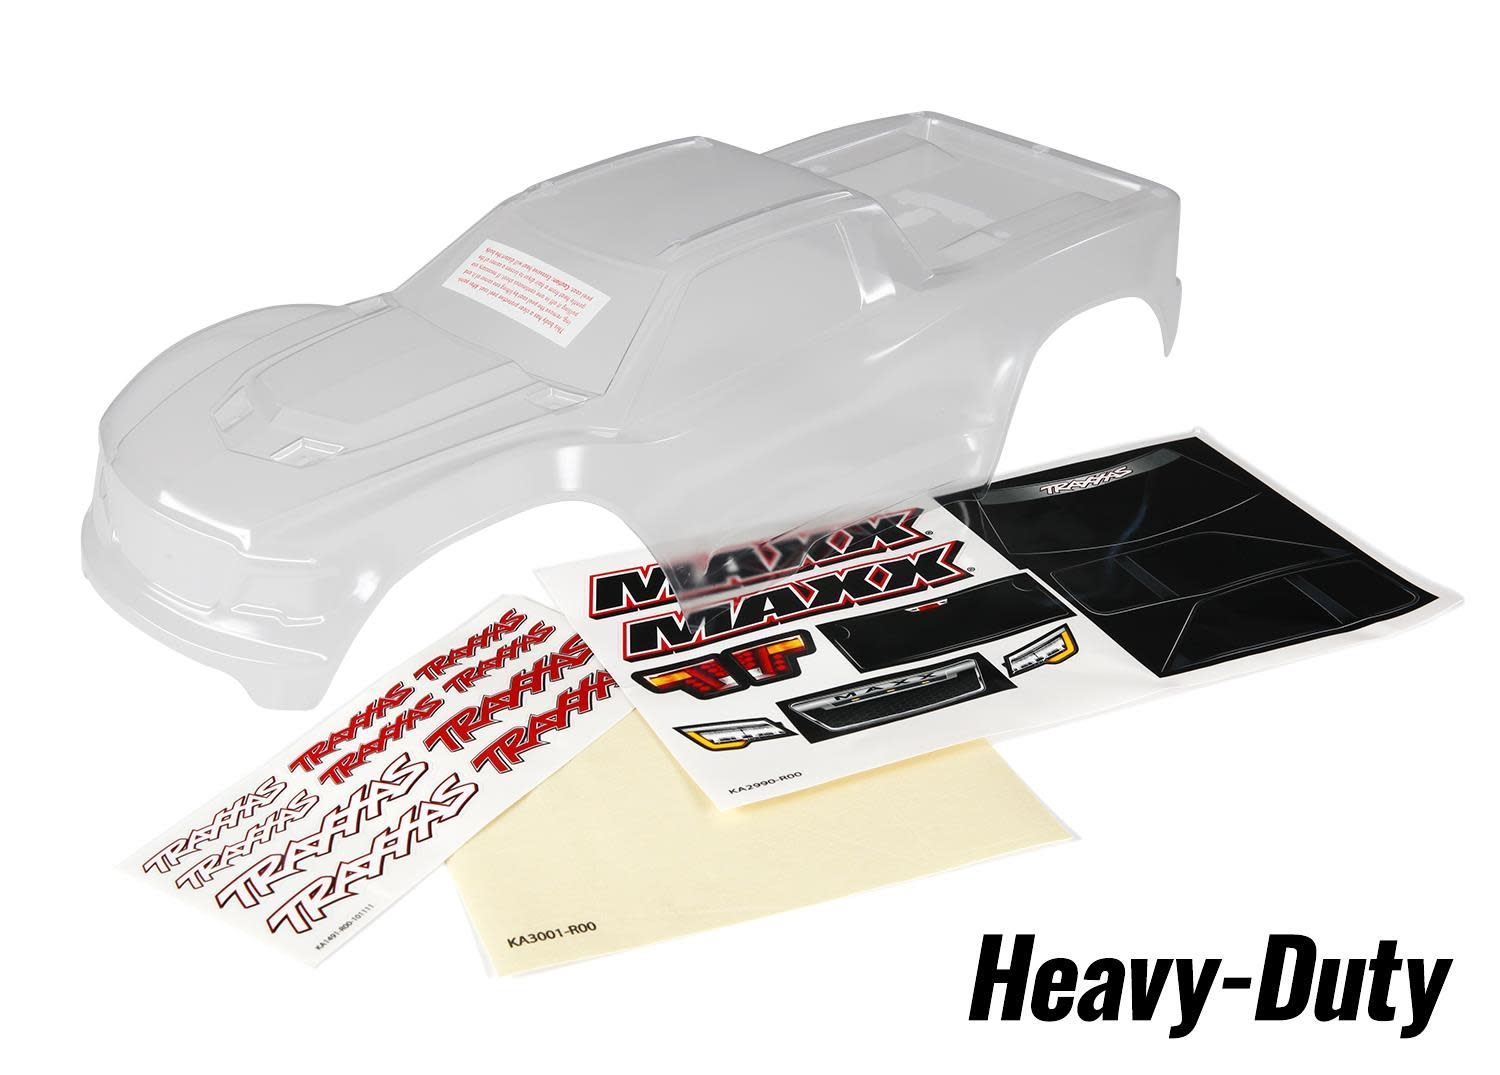 Body, Maxx, heavy duty (clear, untrimmed, requires painting)/ window masks/ deca-1